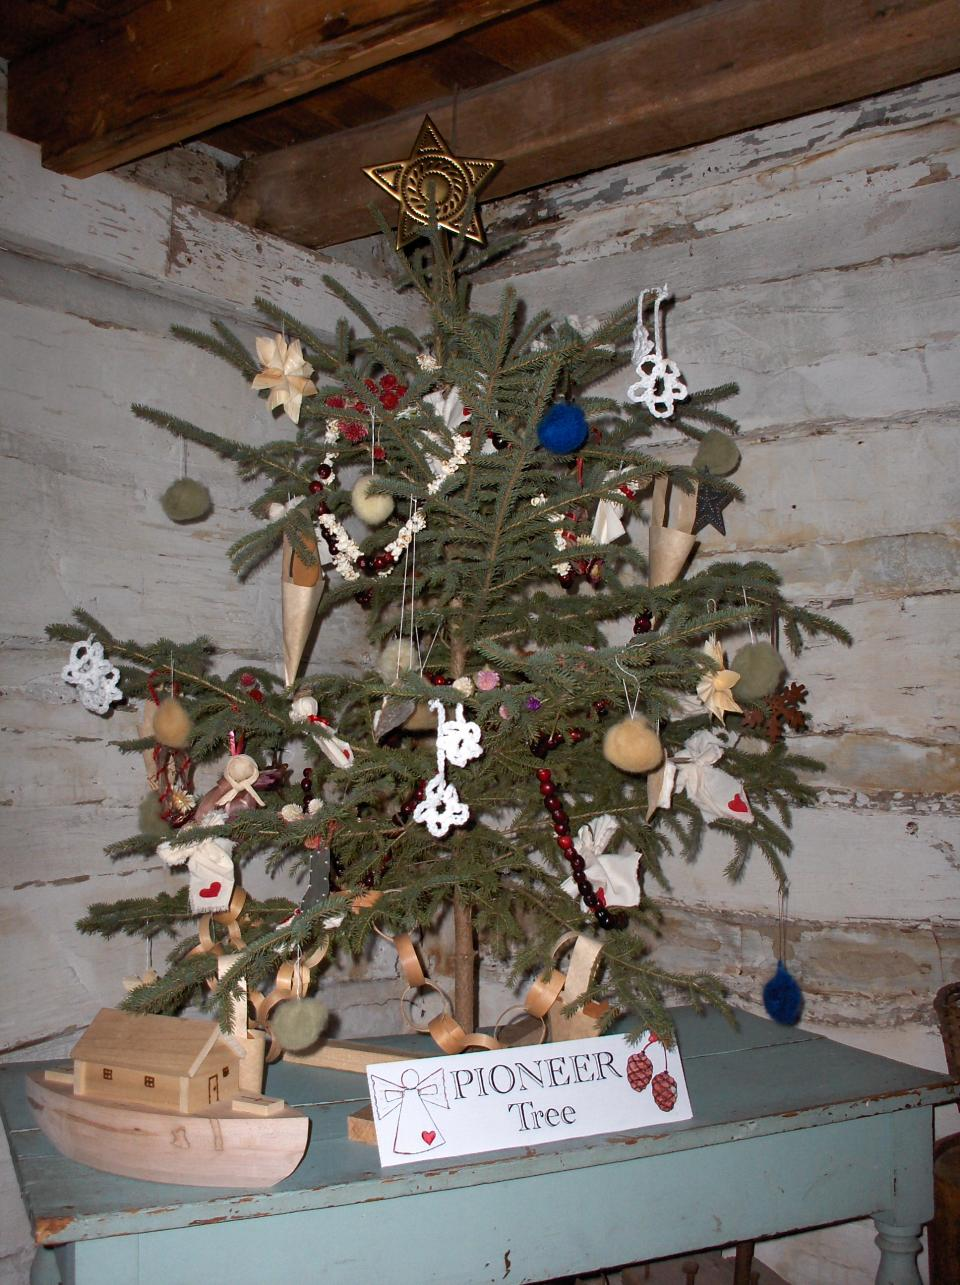 Small tree decorated with simple homemade decorations in the pioneer cabin